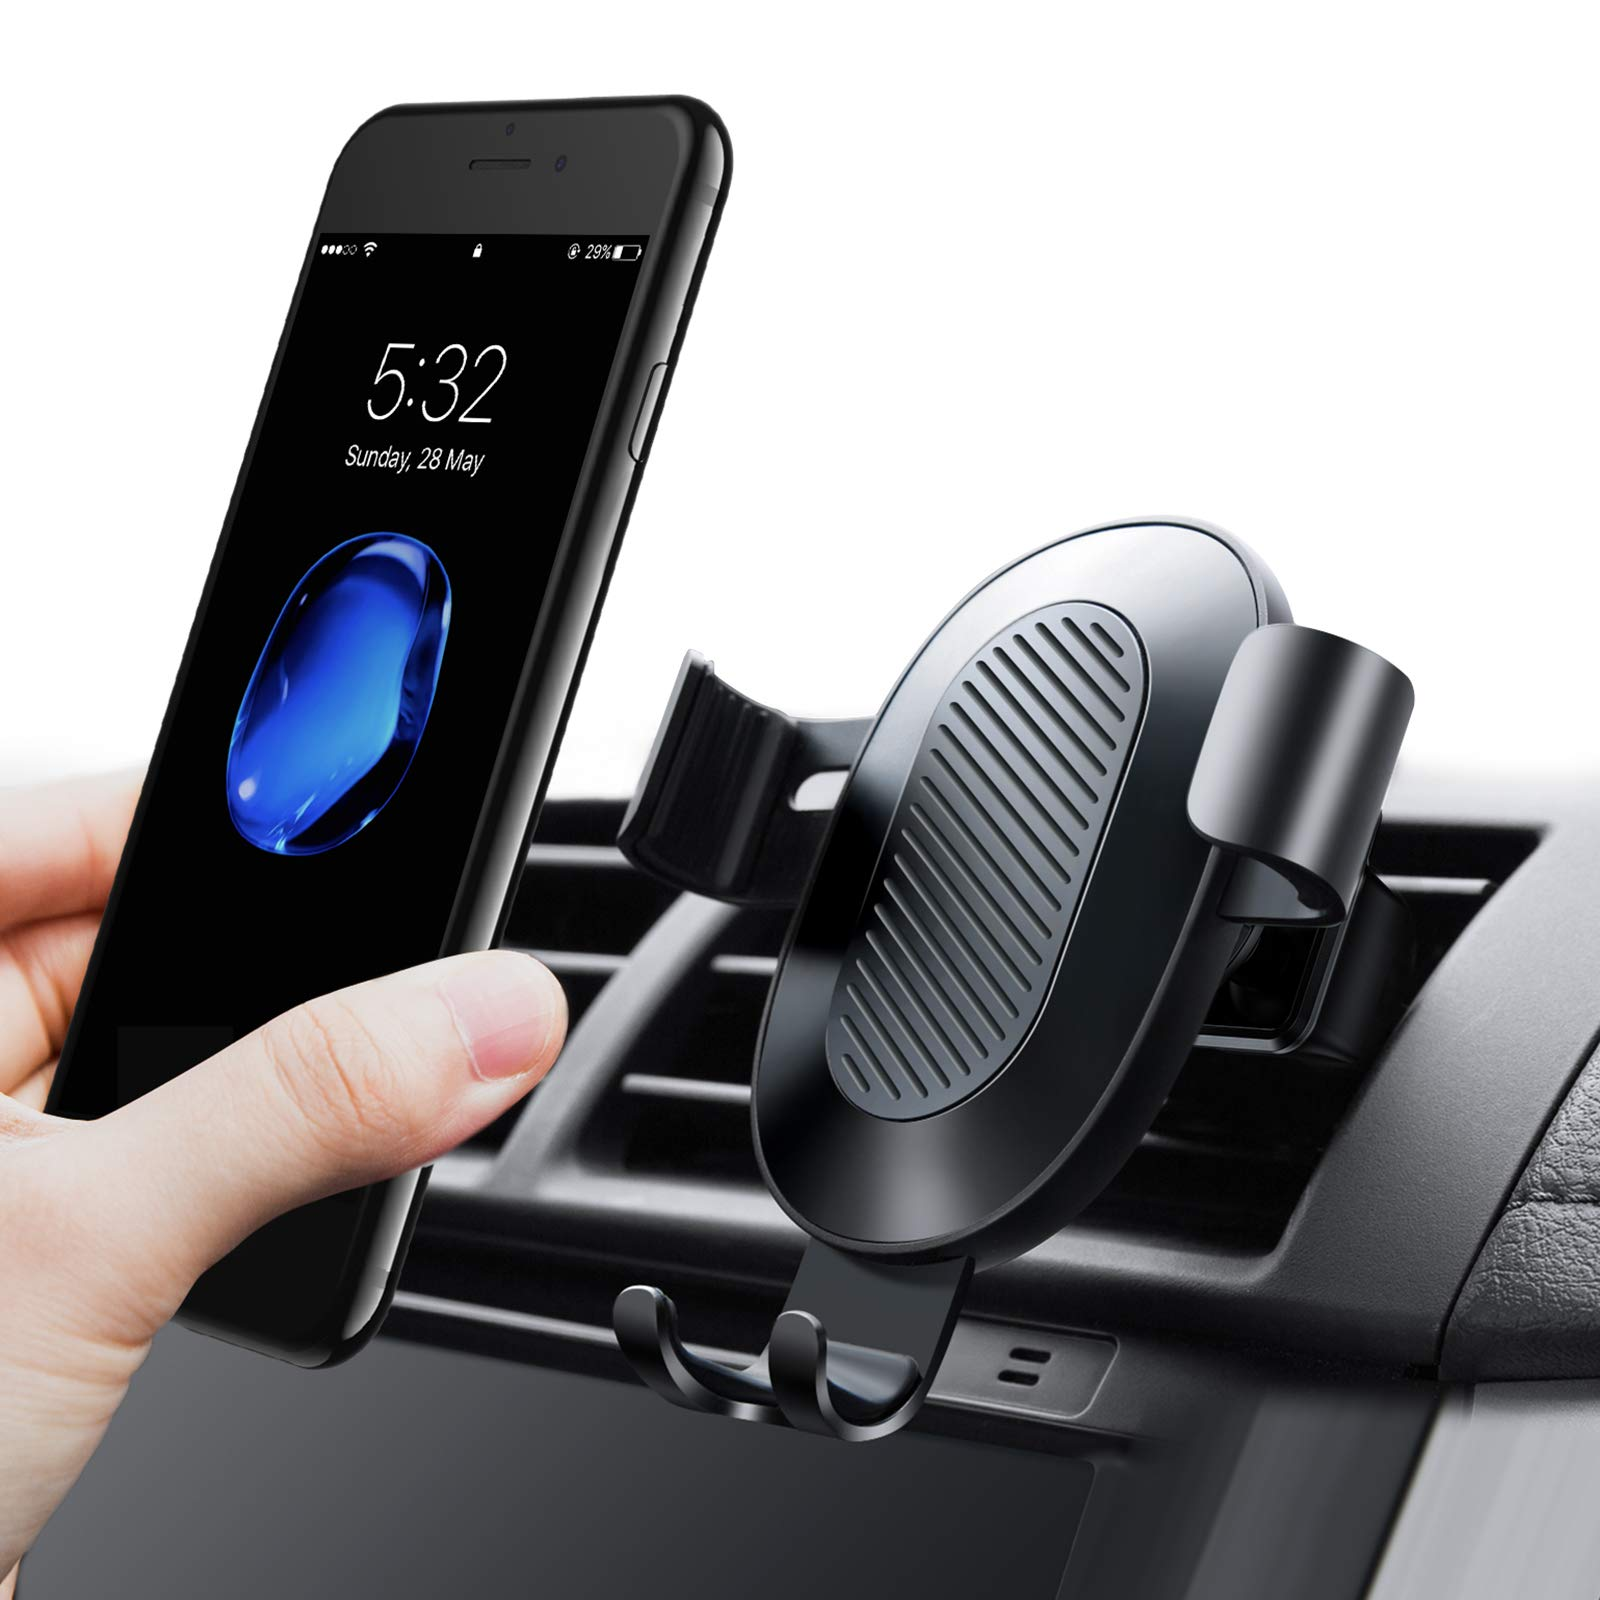 TORRAS Cell Phone Holder for Car, Gravity Auto-Clamping Air Vent Car Mount Holder Cradle Compatible for iPhone X / 8/8 Plus / 7/7 Plus Samsung Galaxy S9 / S9 Plus / S8 / S8 Plus and More – Black